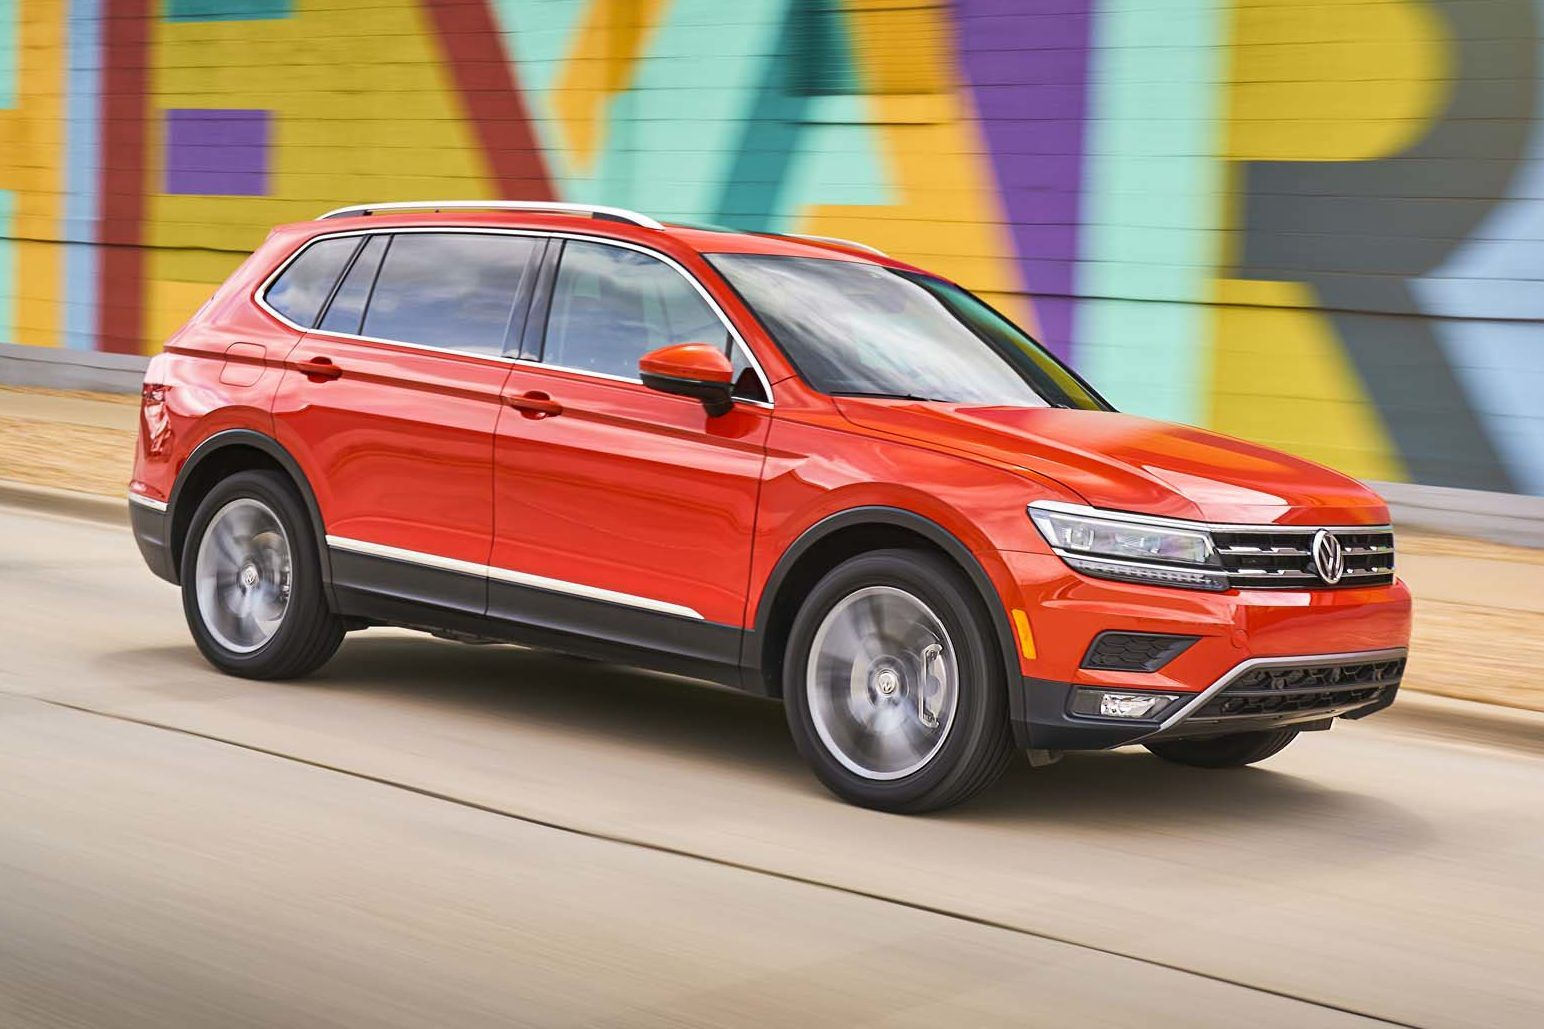 Vw Tiguan Xl Spied In India Again To Be Launched In 2020 Suv Models Vw Passat Skoda Kodiaq